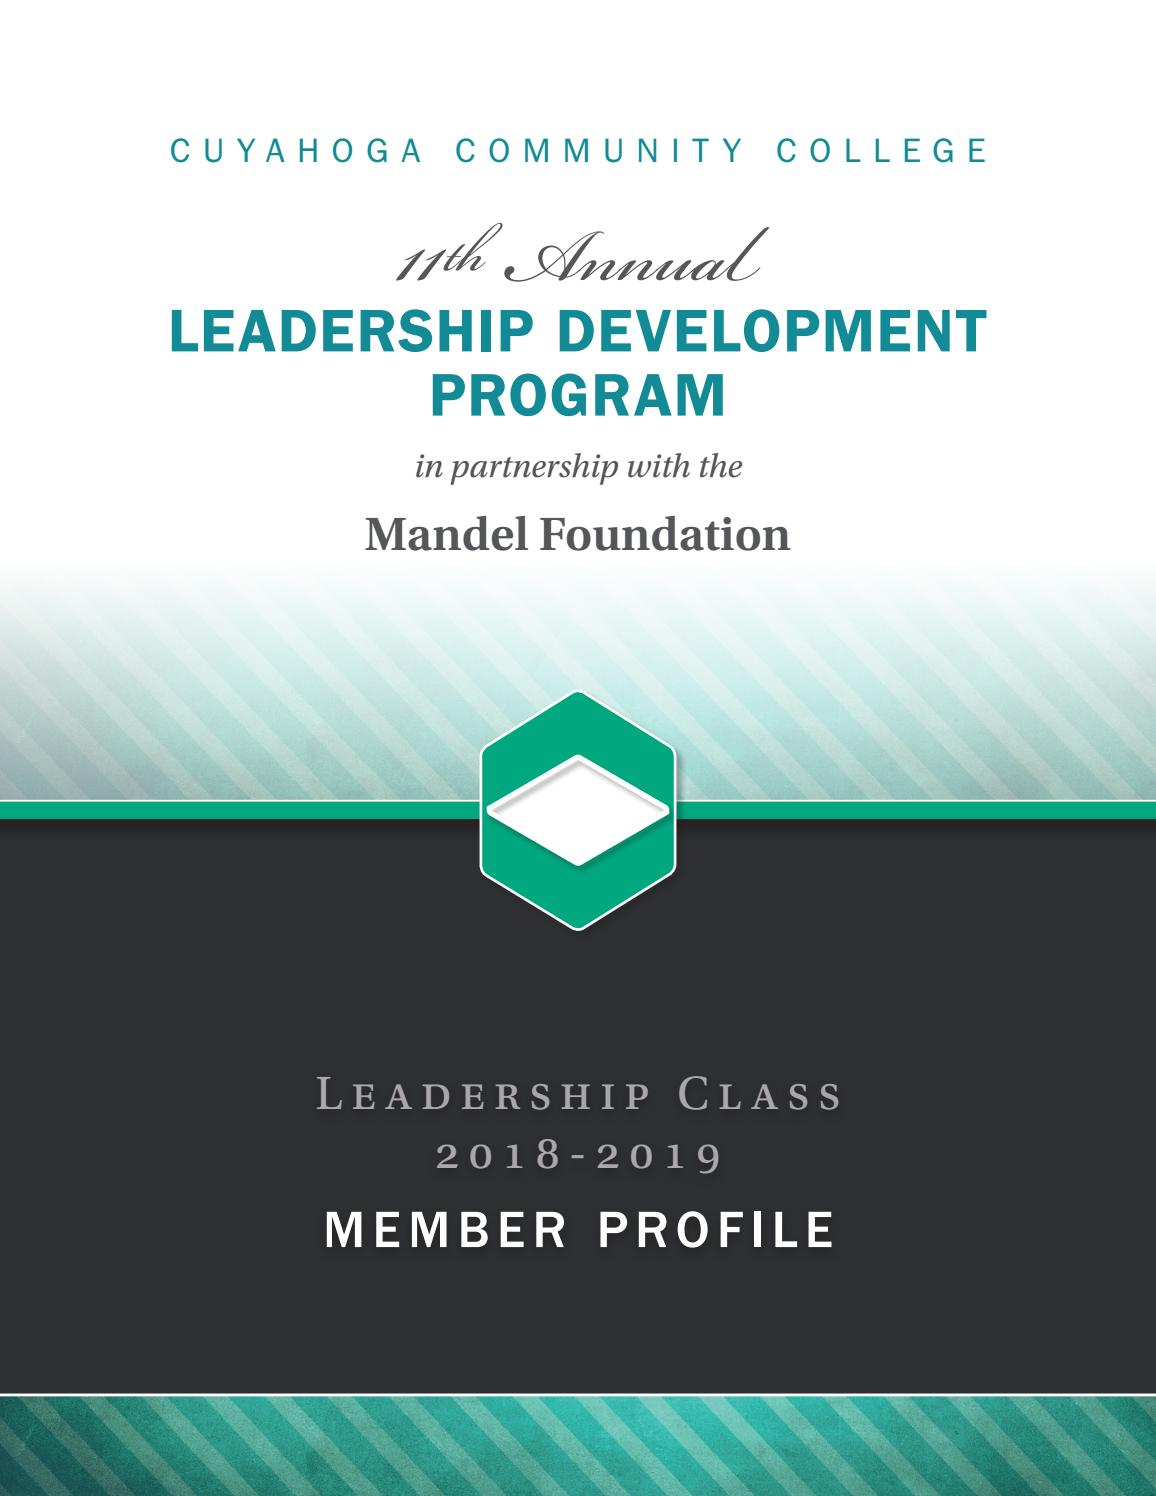 Leadership Development Progam by Cuyahoga Community College